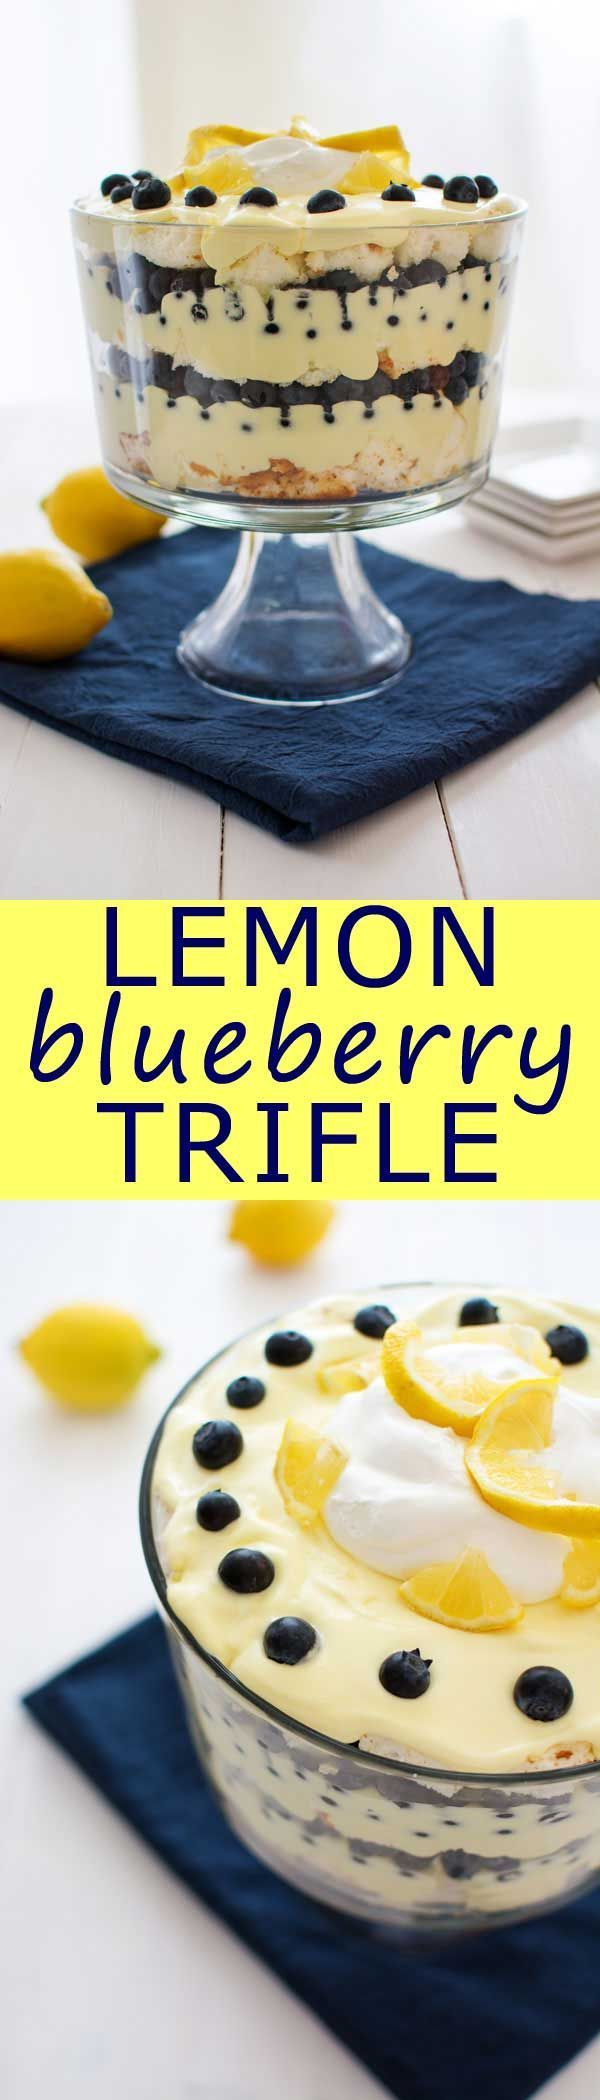 Lemon Blueberry Trifle: lemon pudding, cool whip and juicy blueberries. Can be made with angel food cake or pound cake! (Bake Desserts Cool Whip)